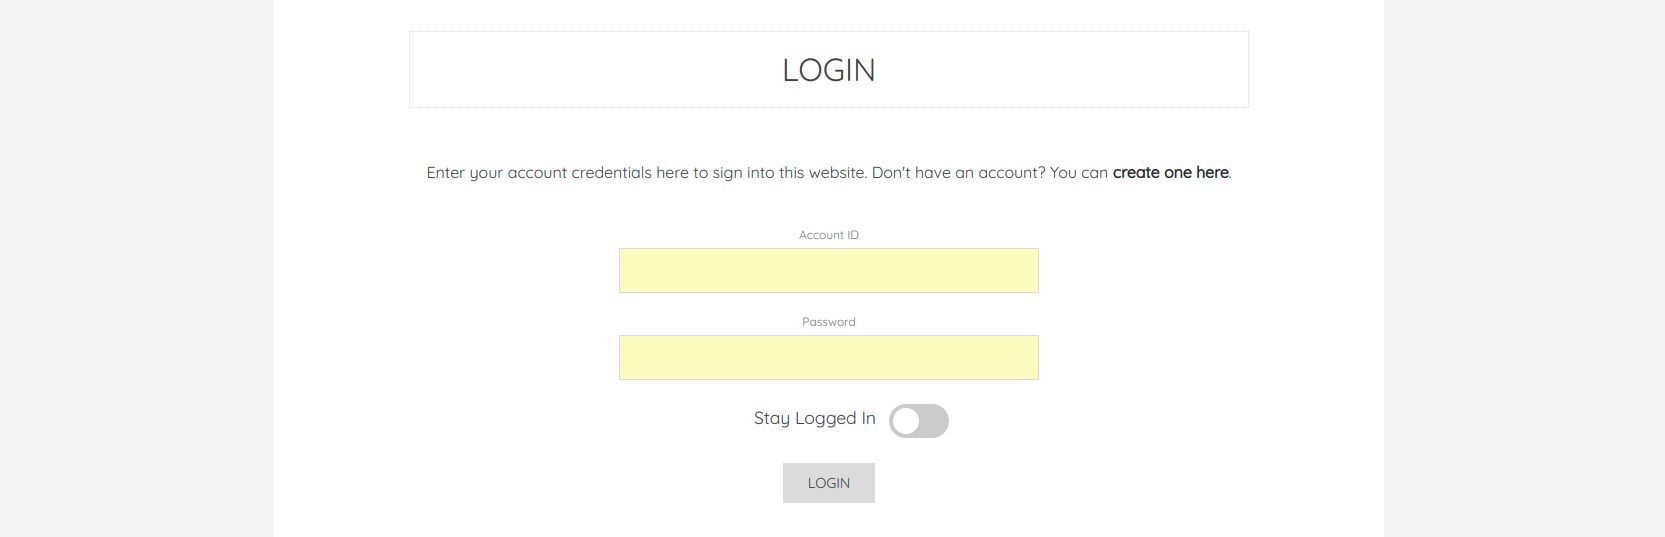 The Login Form